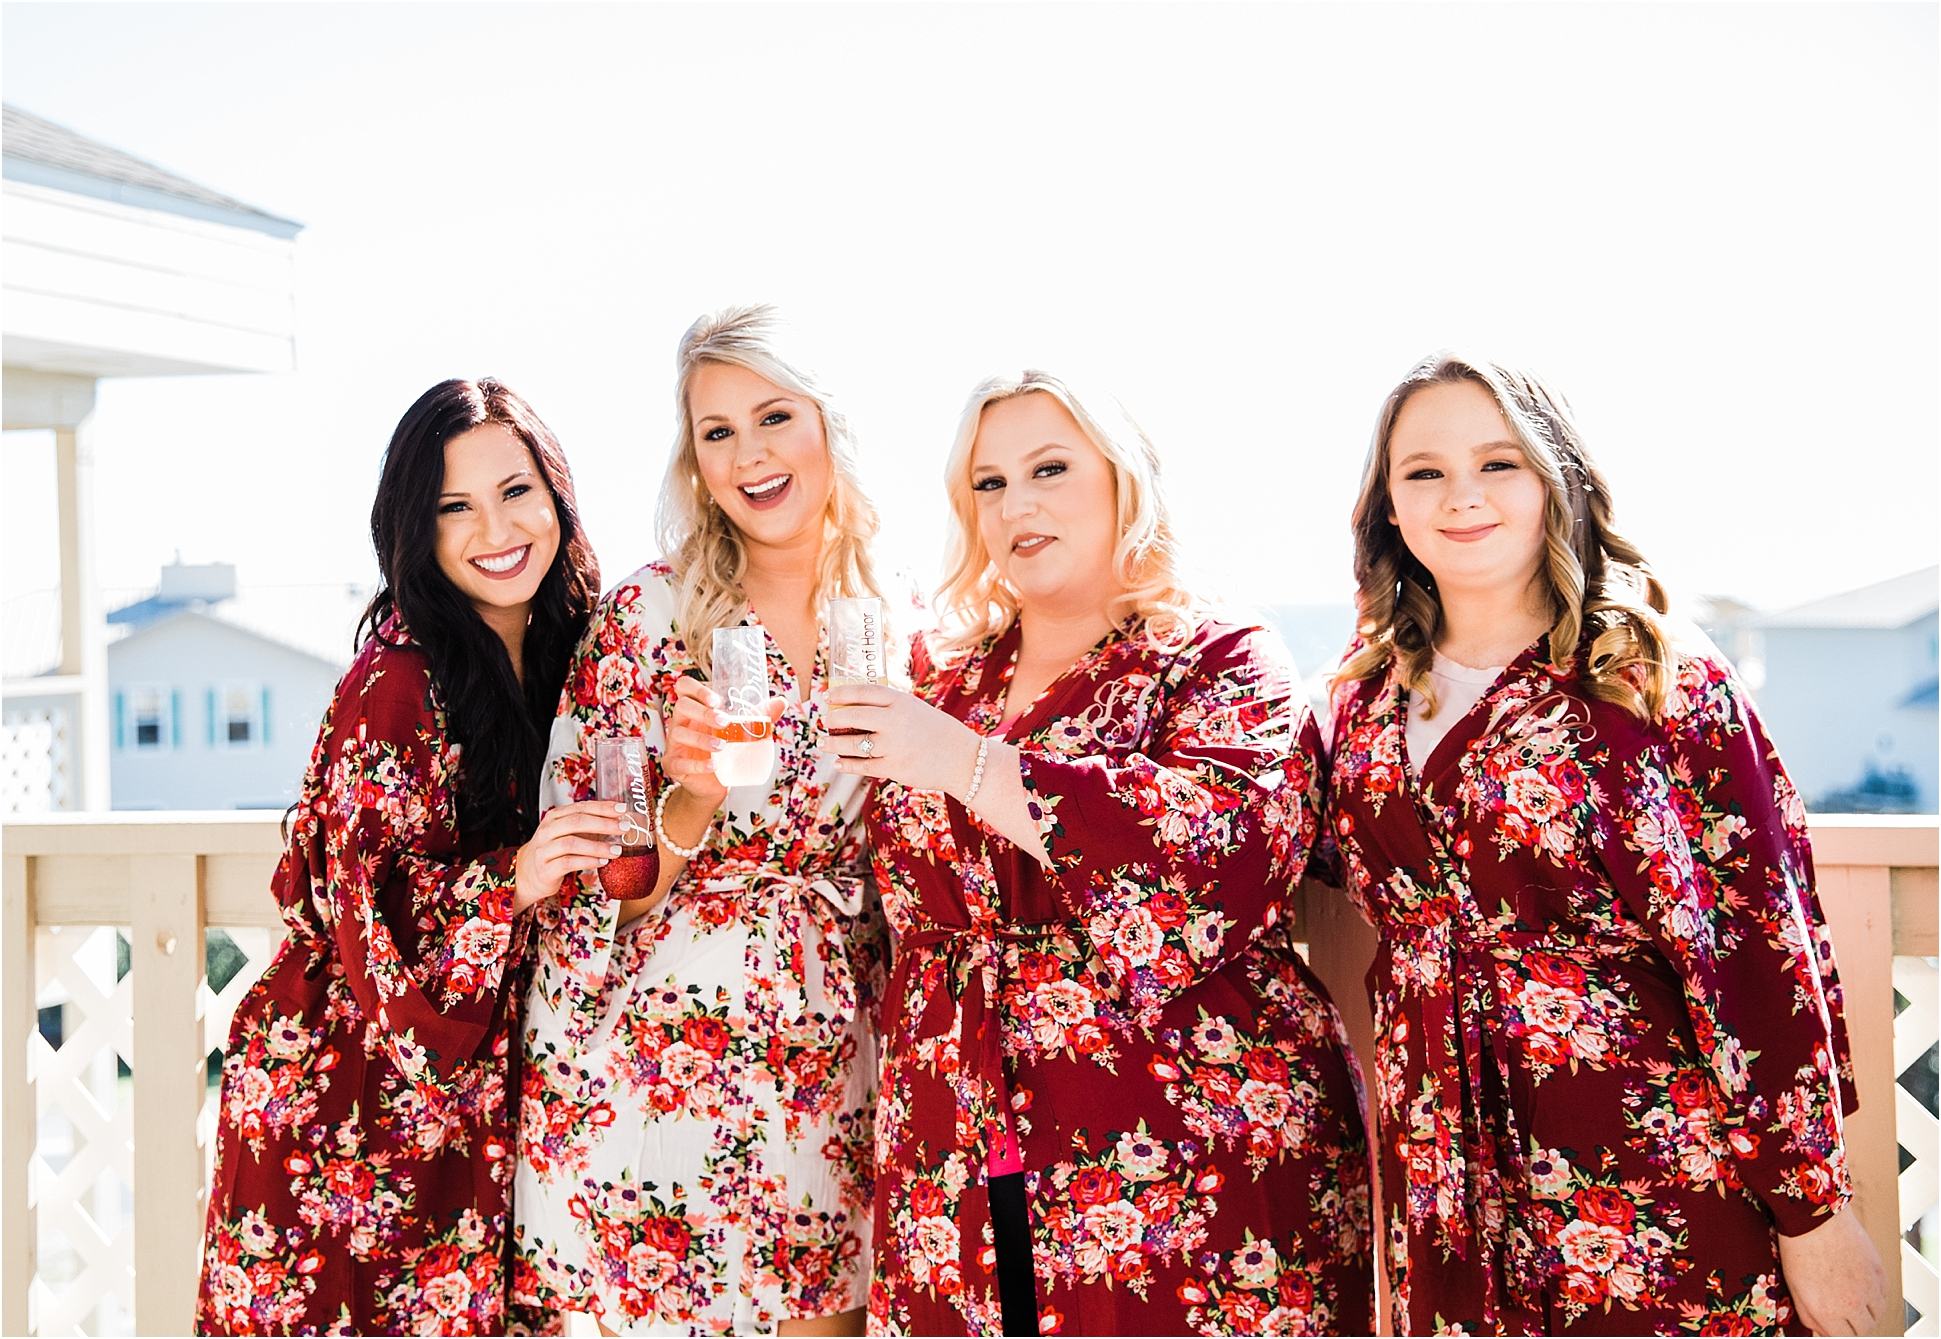 Bridal Party Fun Pictures